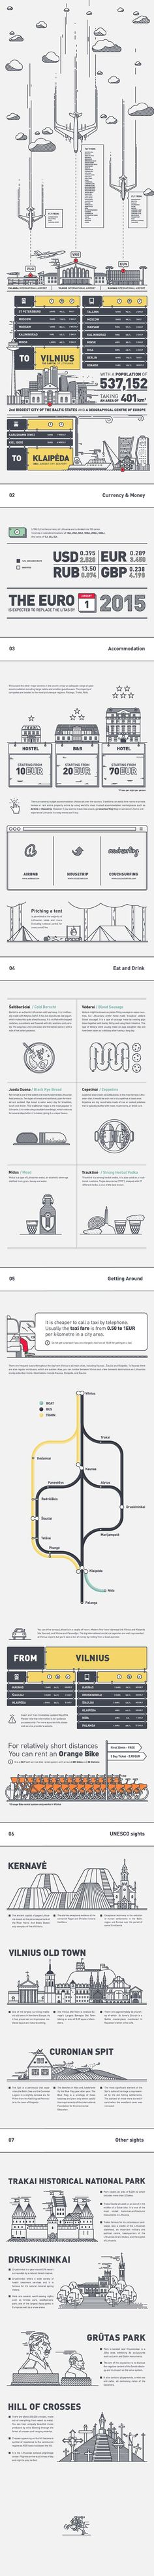 The way this information is set up in the design makes it interesting to look at and easy to understand. The colors are easy to look at and aren't too bright.: